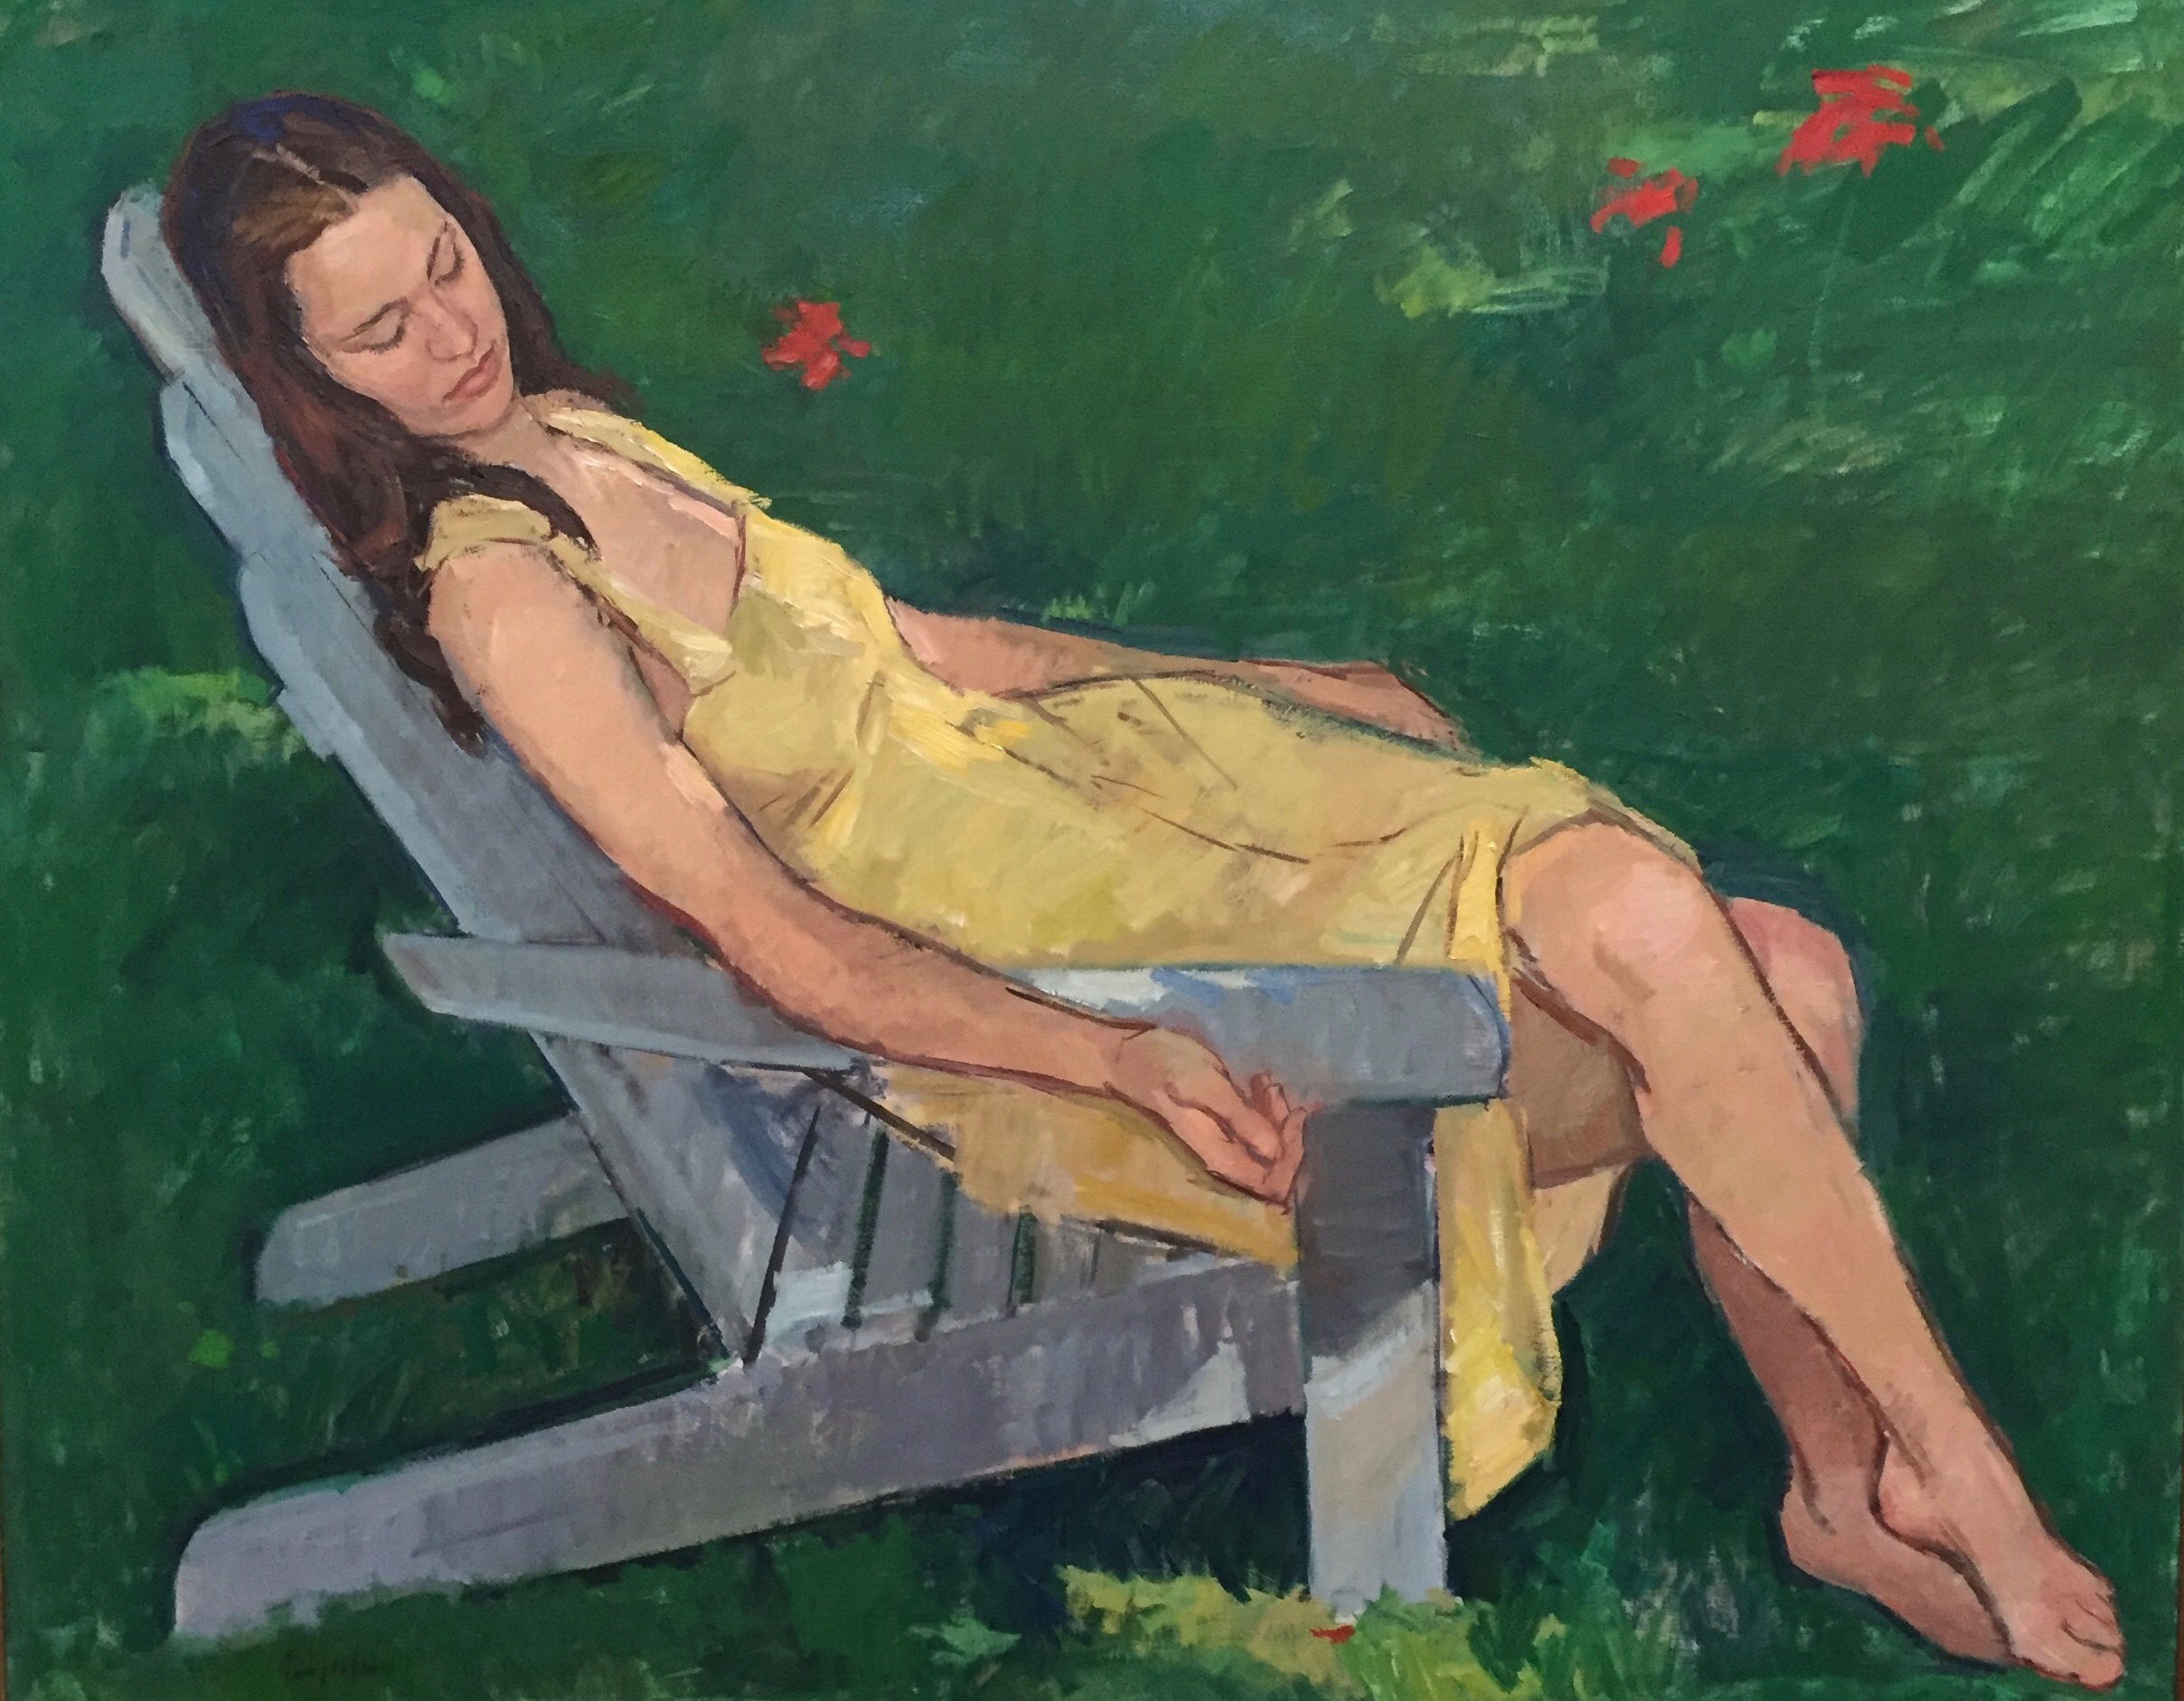 Jerry Weiss at Portraits, Inc.